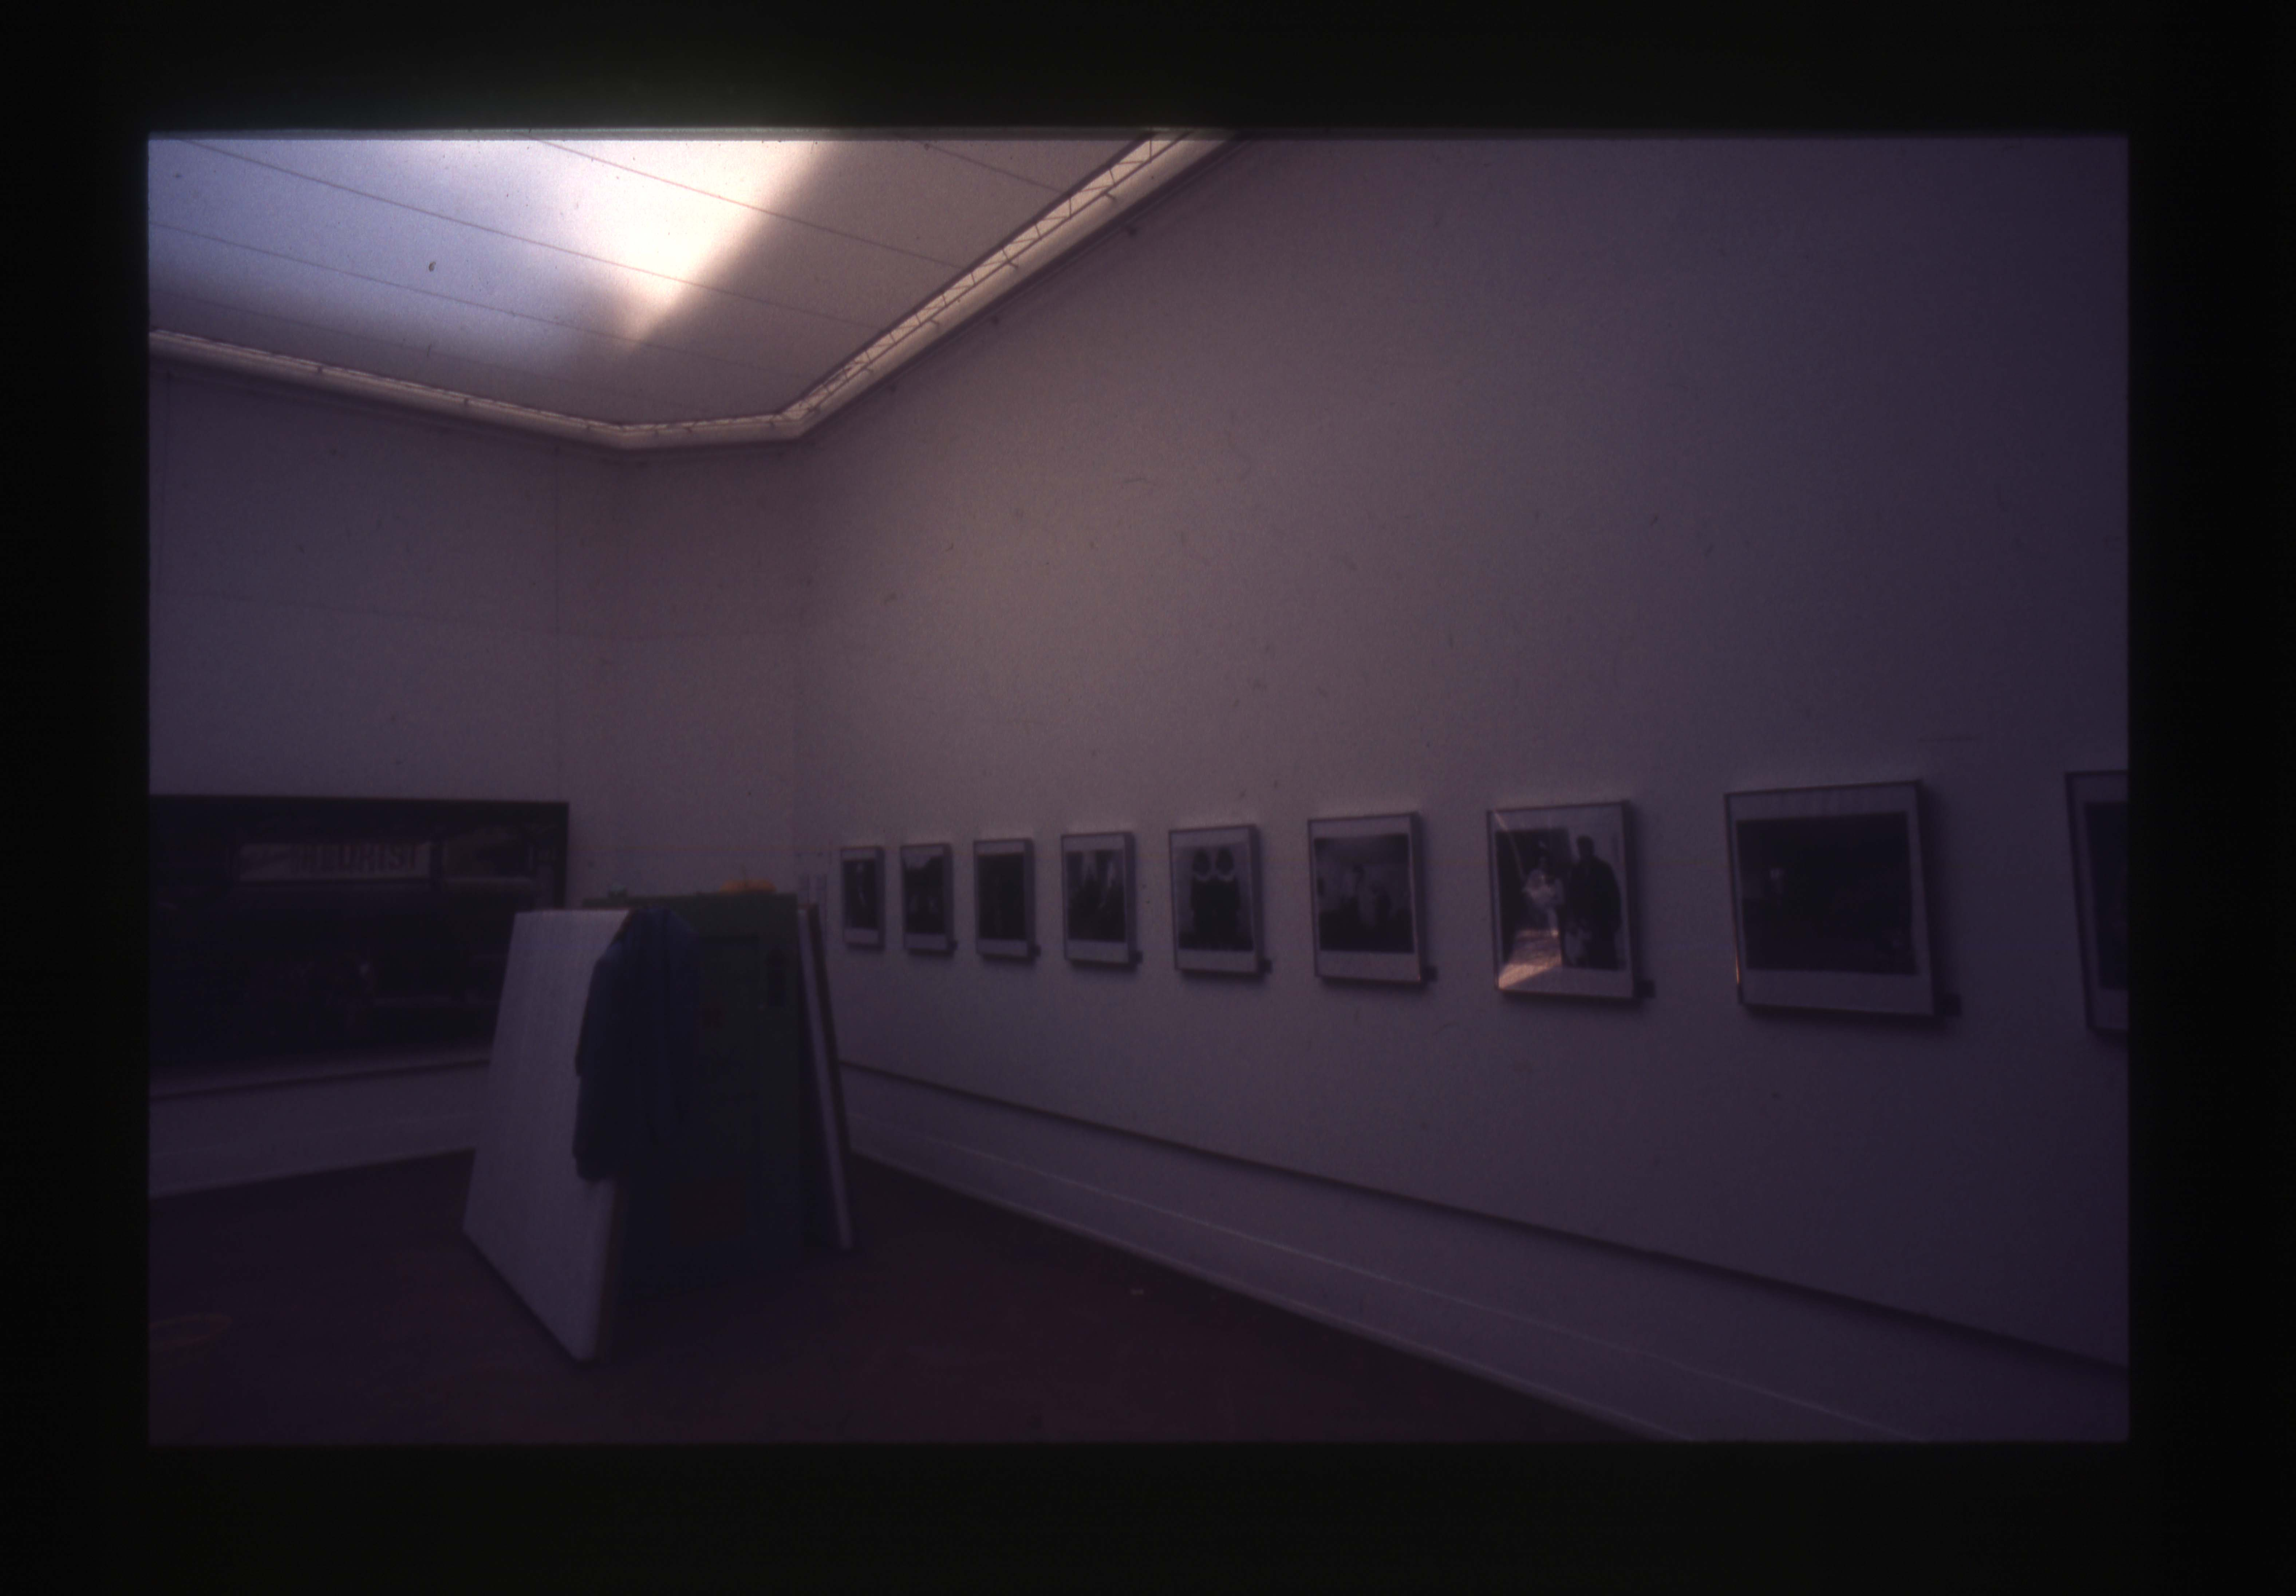 Color photo of a gallery with white walls, hanging in a single row across the walls are photographs.